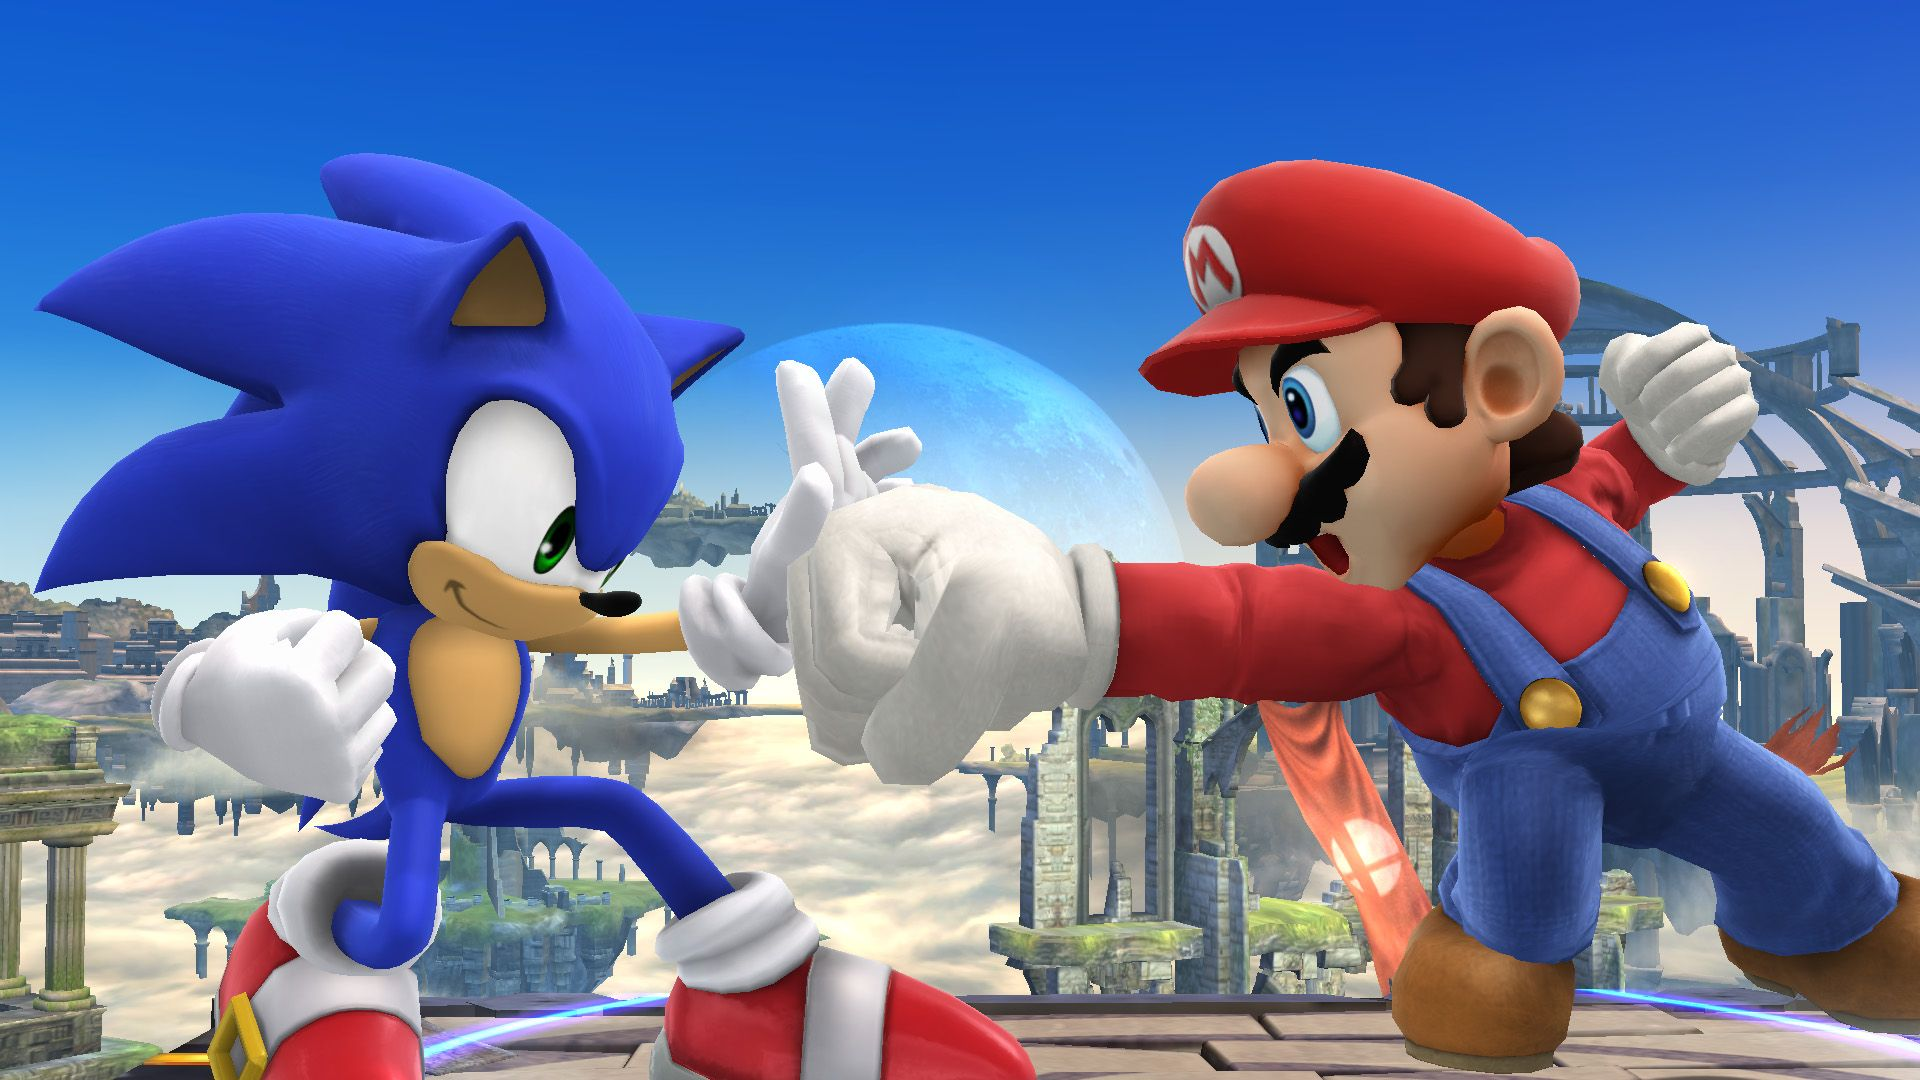 Button Smashing: Ranking the Best & Worst Smash Bros Characters for